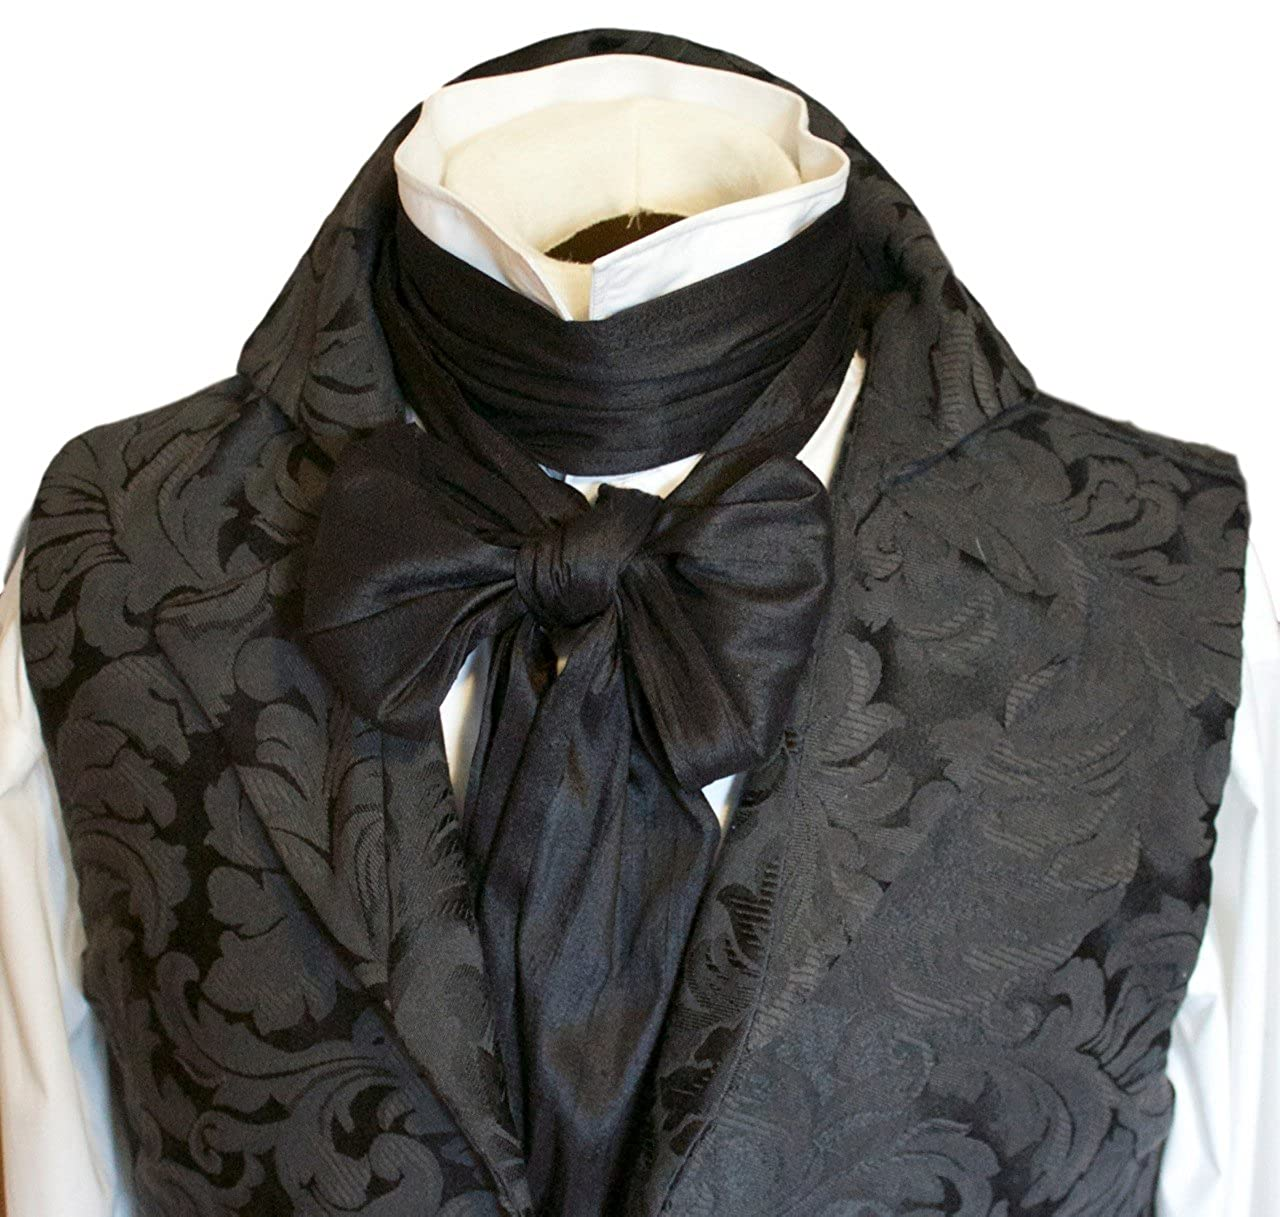 Men's Victorian Costume and Clothing Guide Elegantascot Mens Handmade Extra-Long Regency Dupioni Silk Ascot Tie $40.00 AT vintagedancer.com